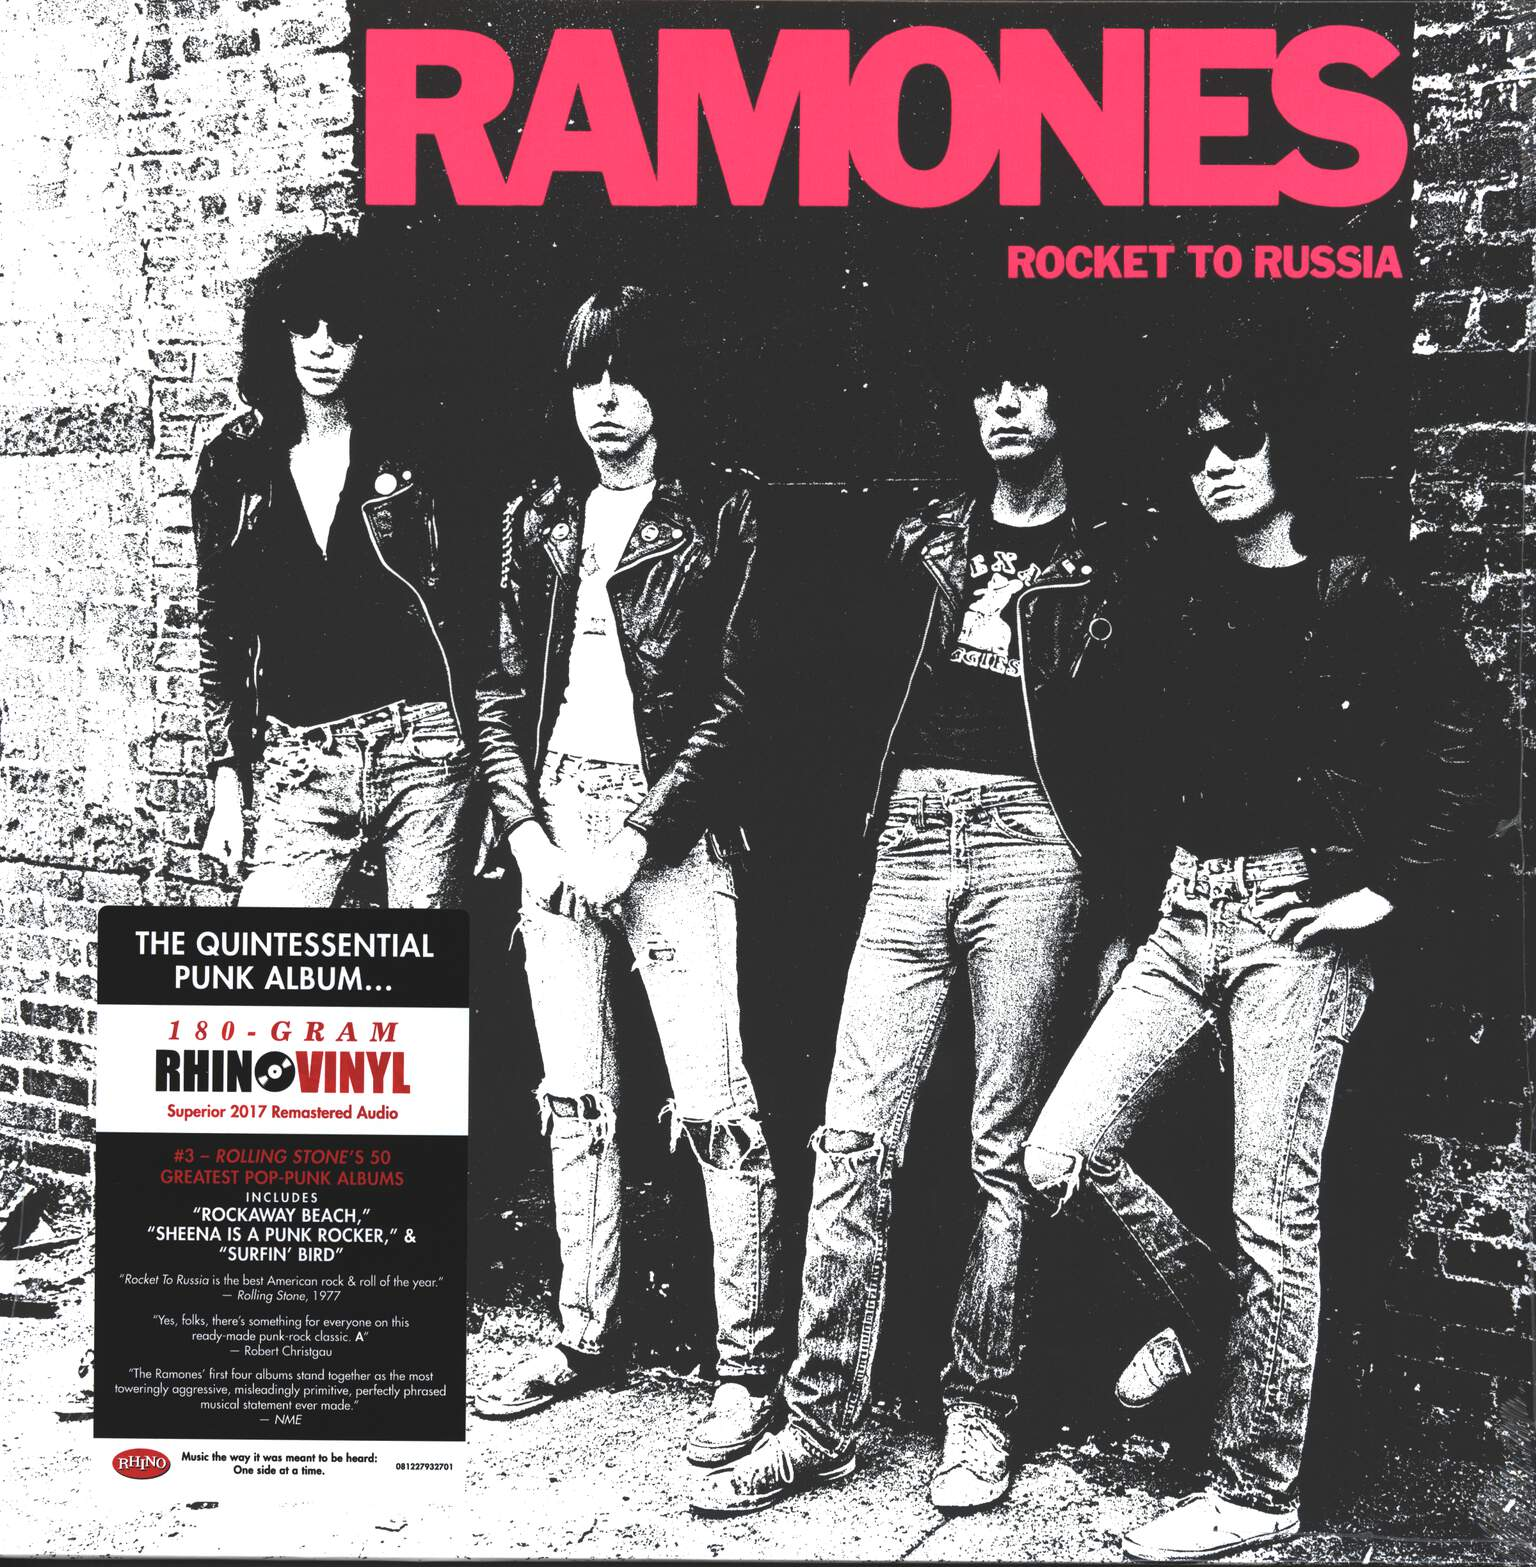 Ramones: Rocket To Russia, 1×LP (Vinyl)